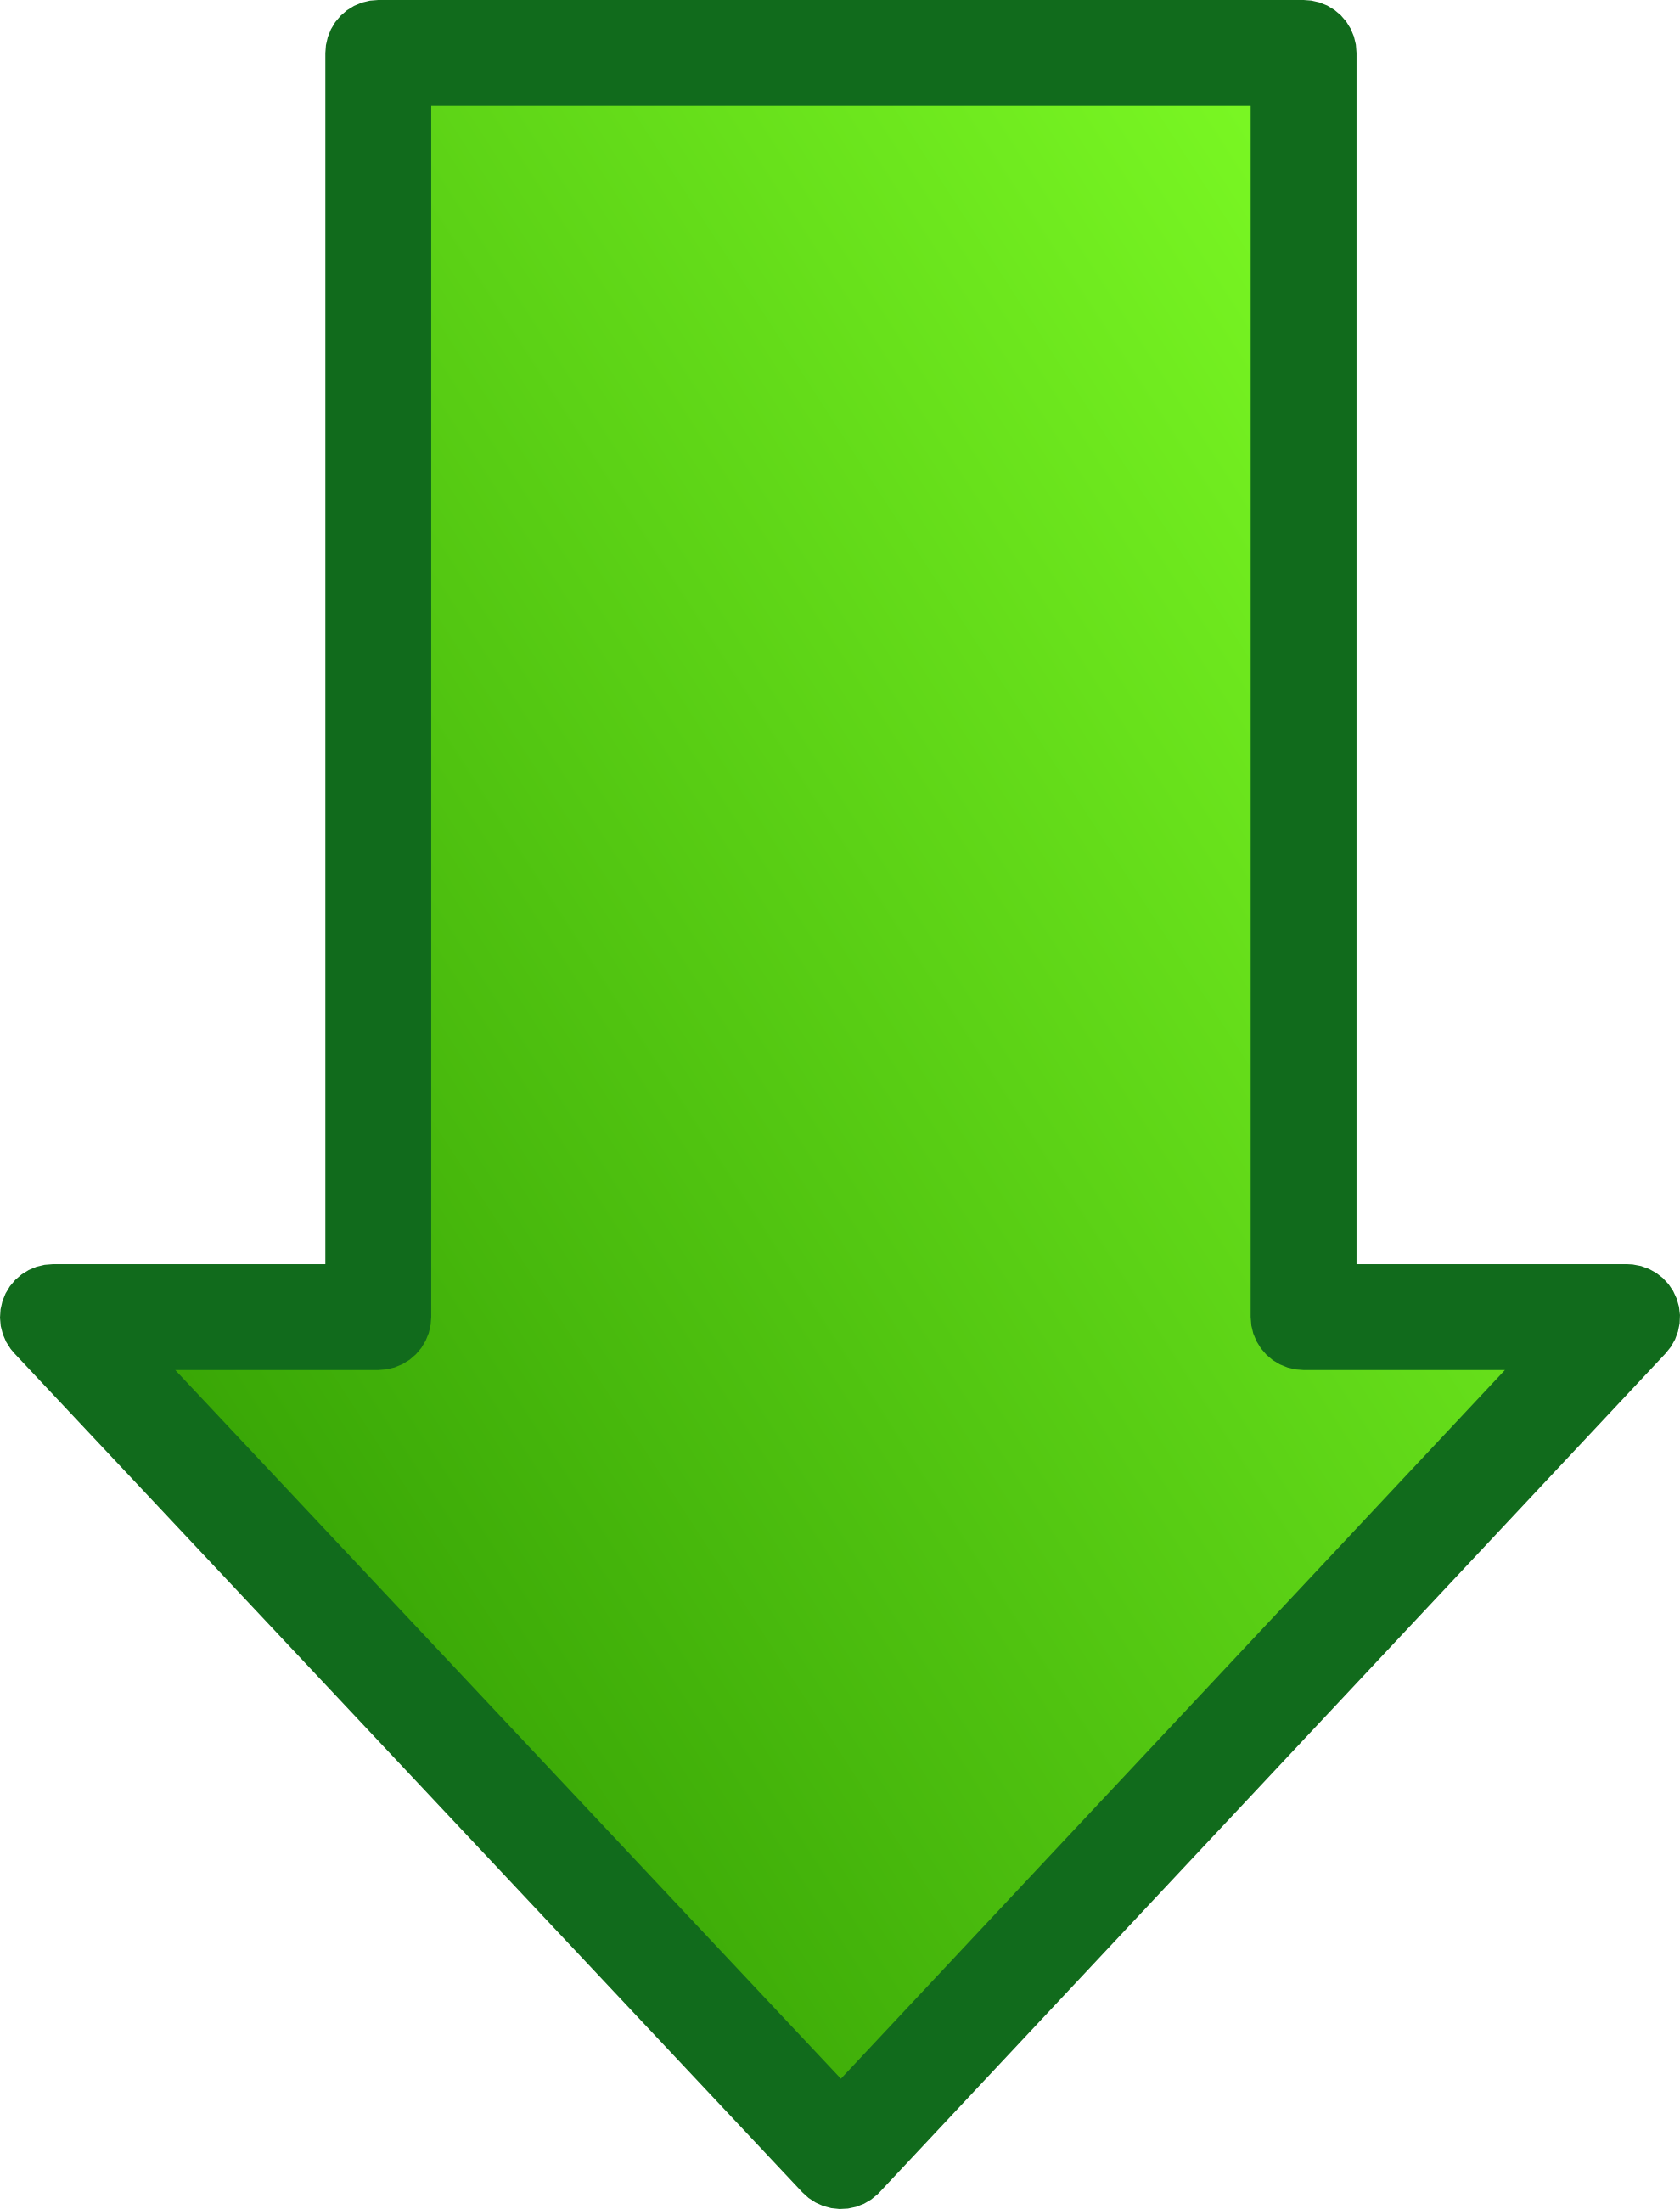 Pathway clipart direction. Green arrow png mart